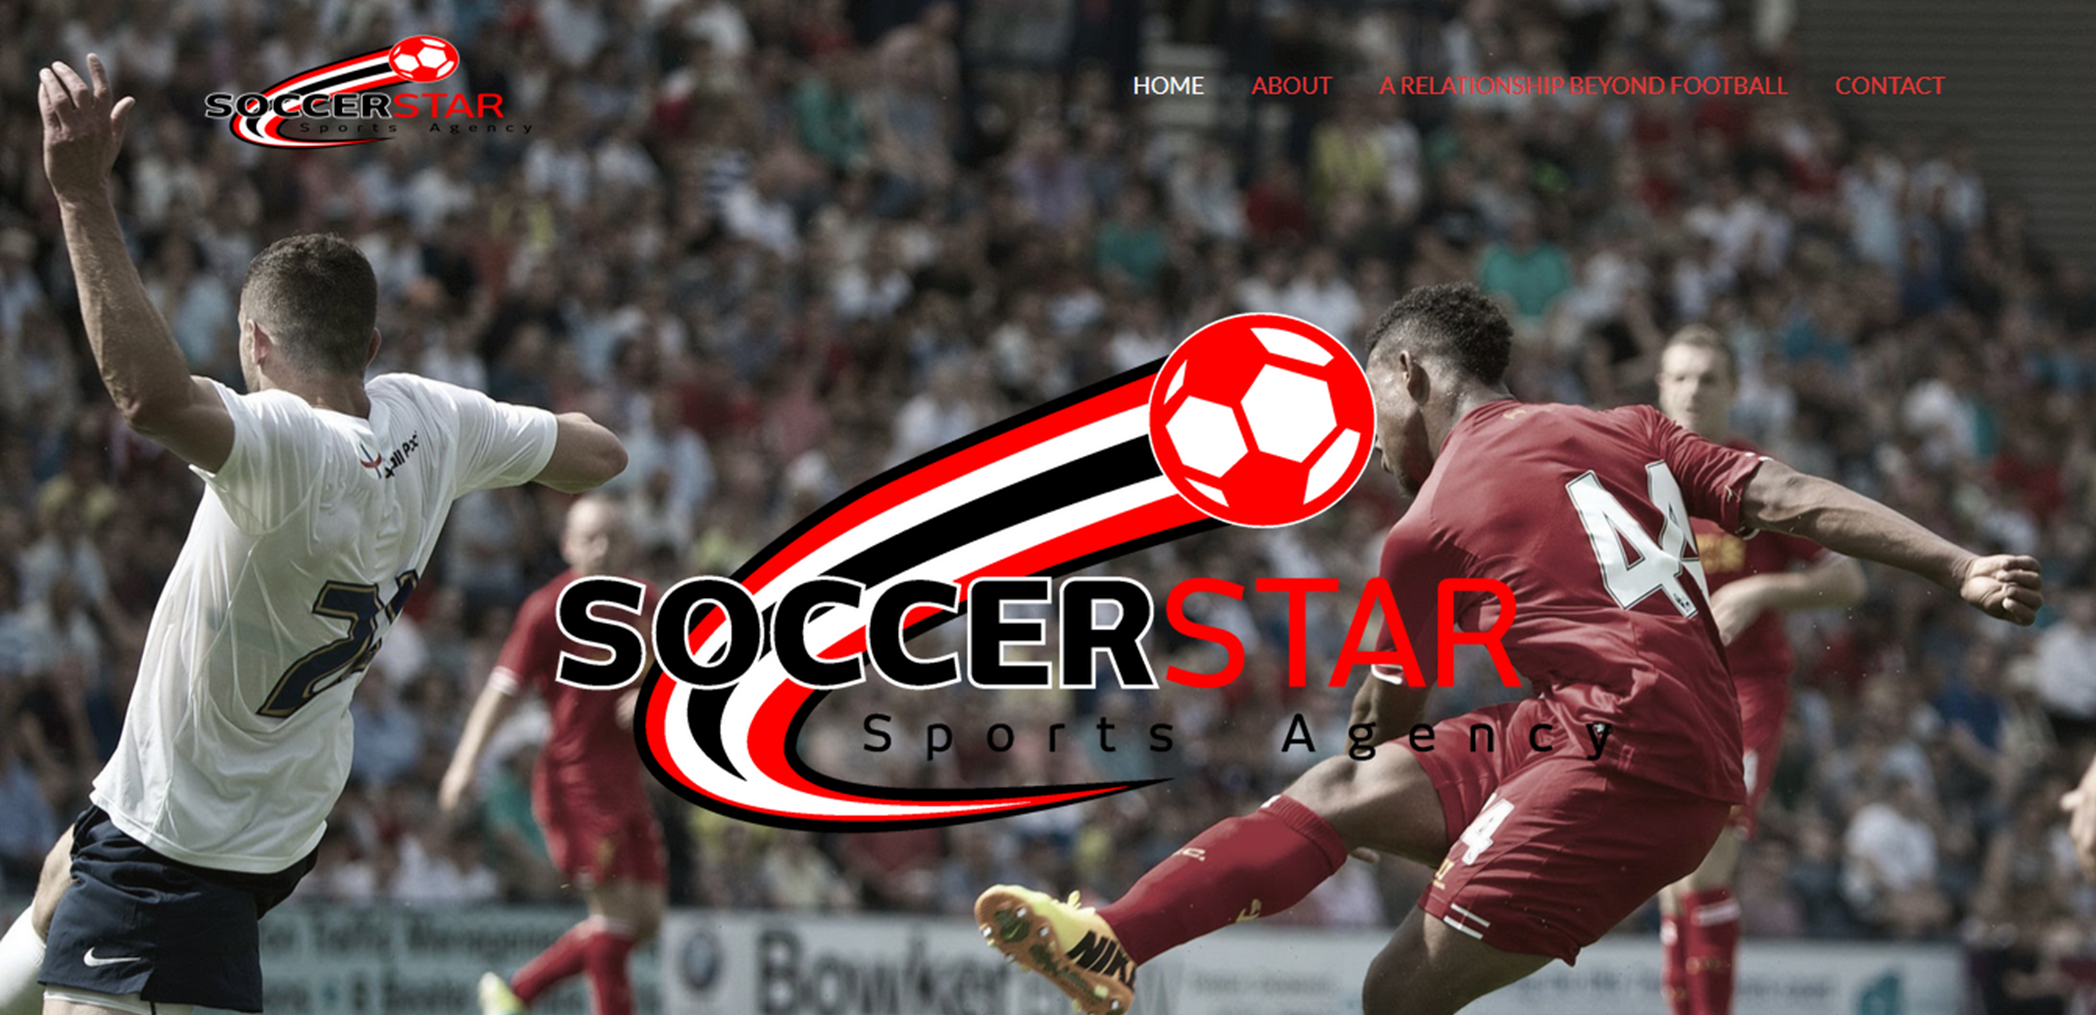 SoccerStar Home page